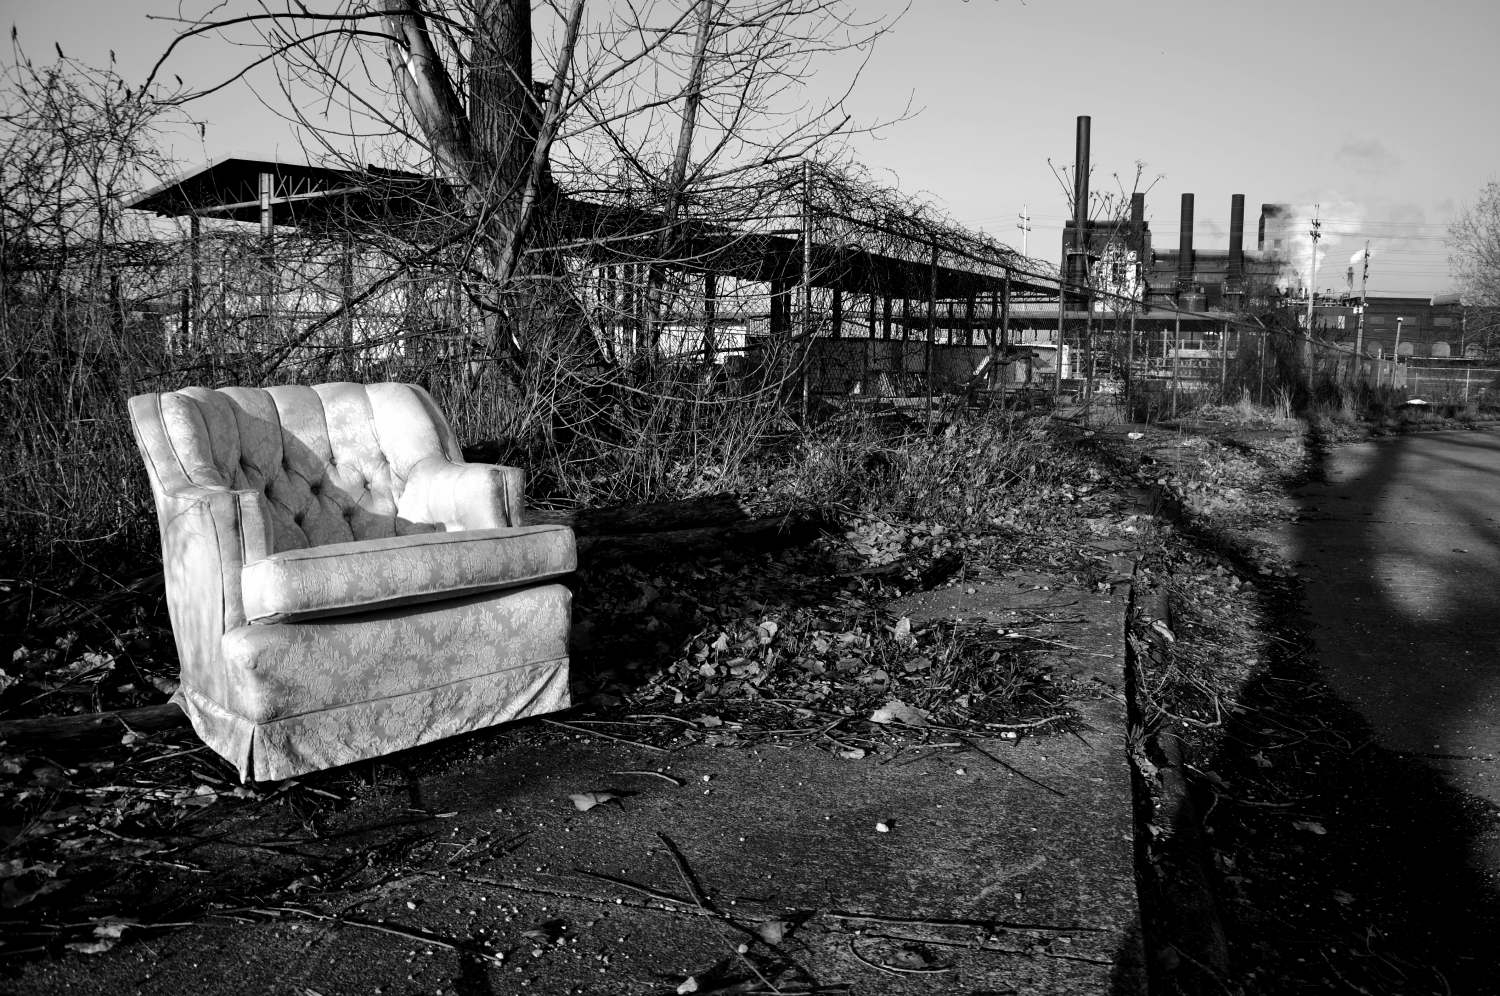 Abandoned Chair - Cleveland